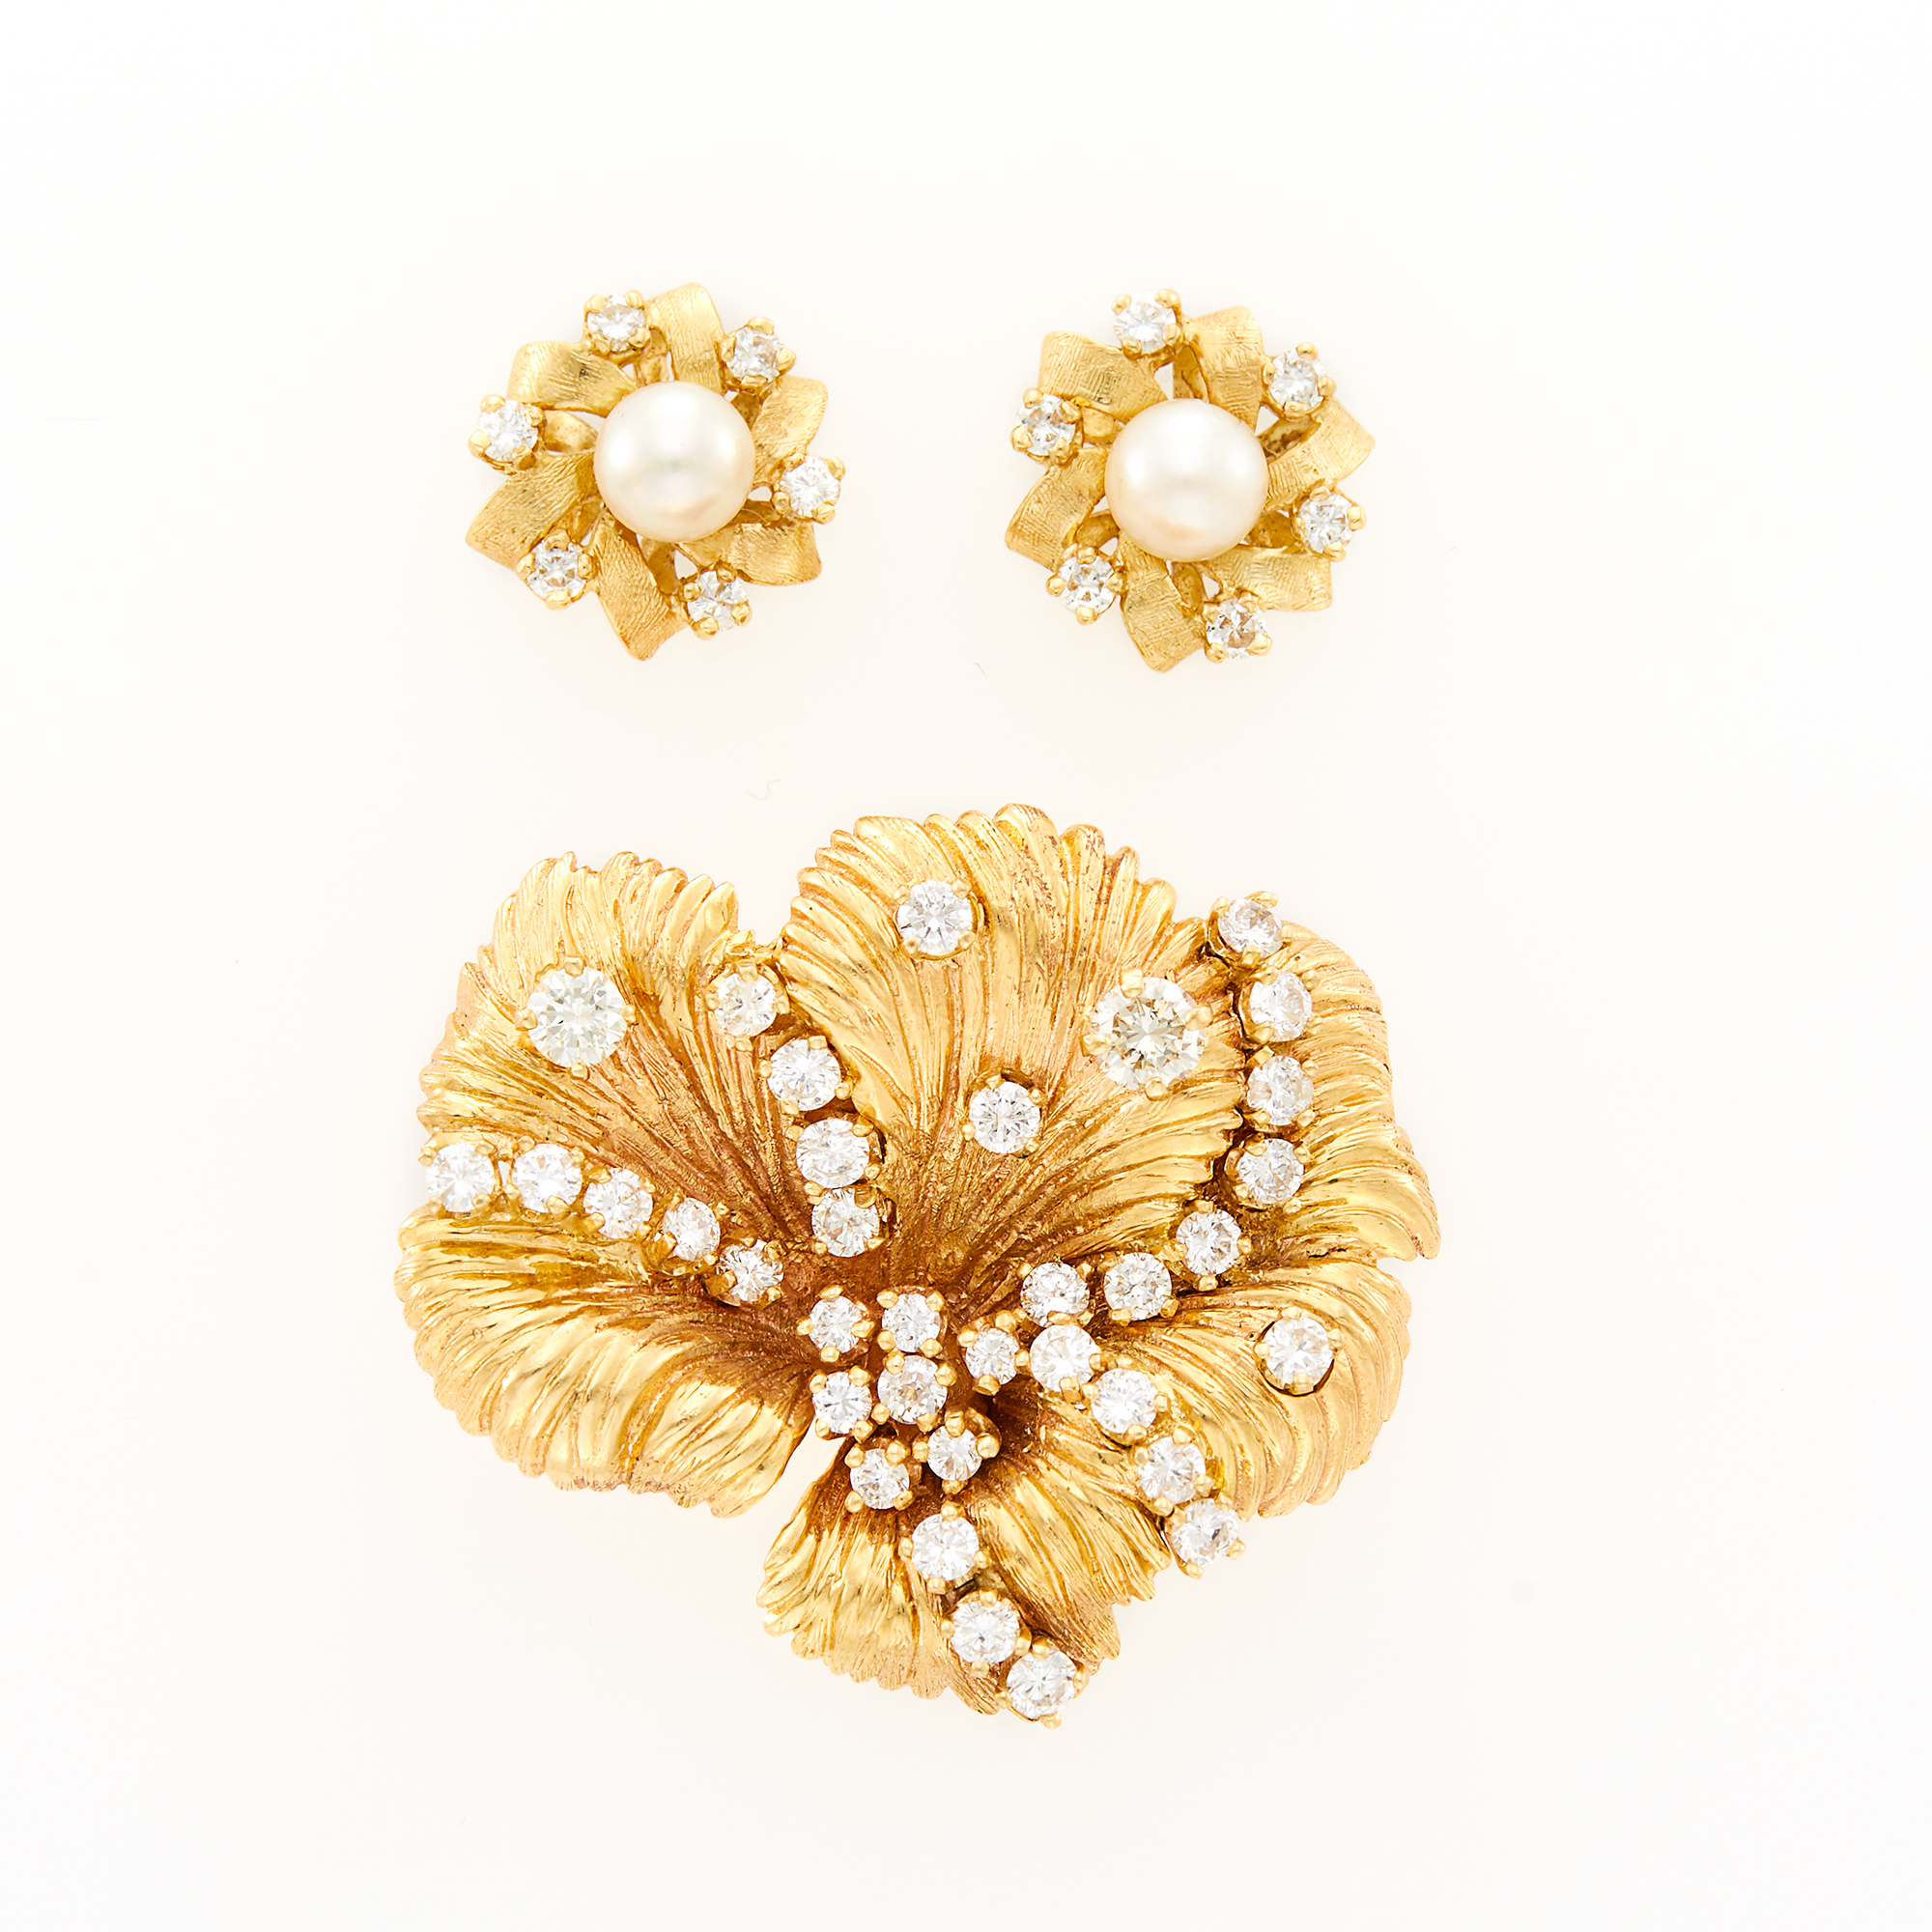 Lot image - Gold and Diamond Flower Brooch and Pair of Gold, Cultured Pearl and Diamond Flower Earrings